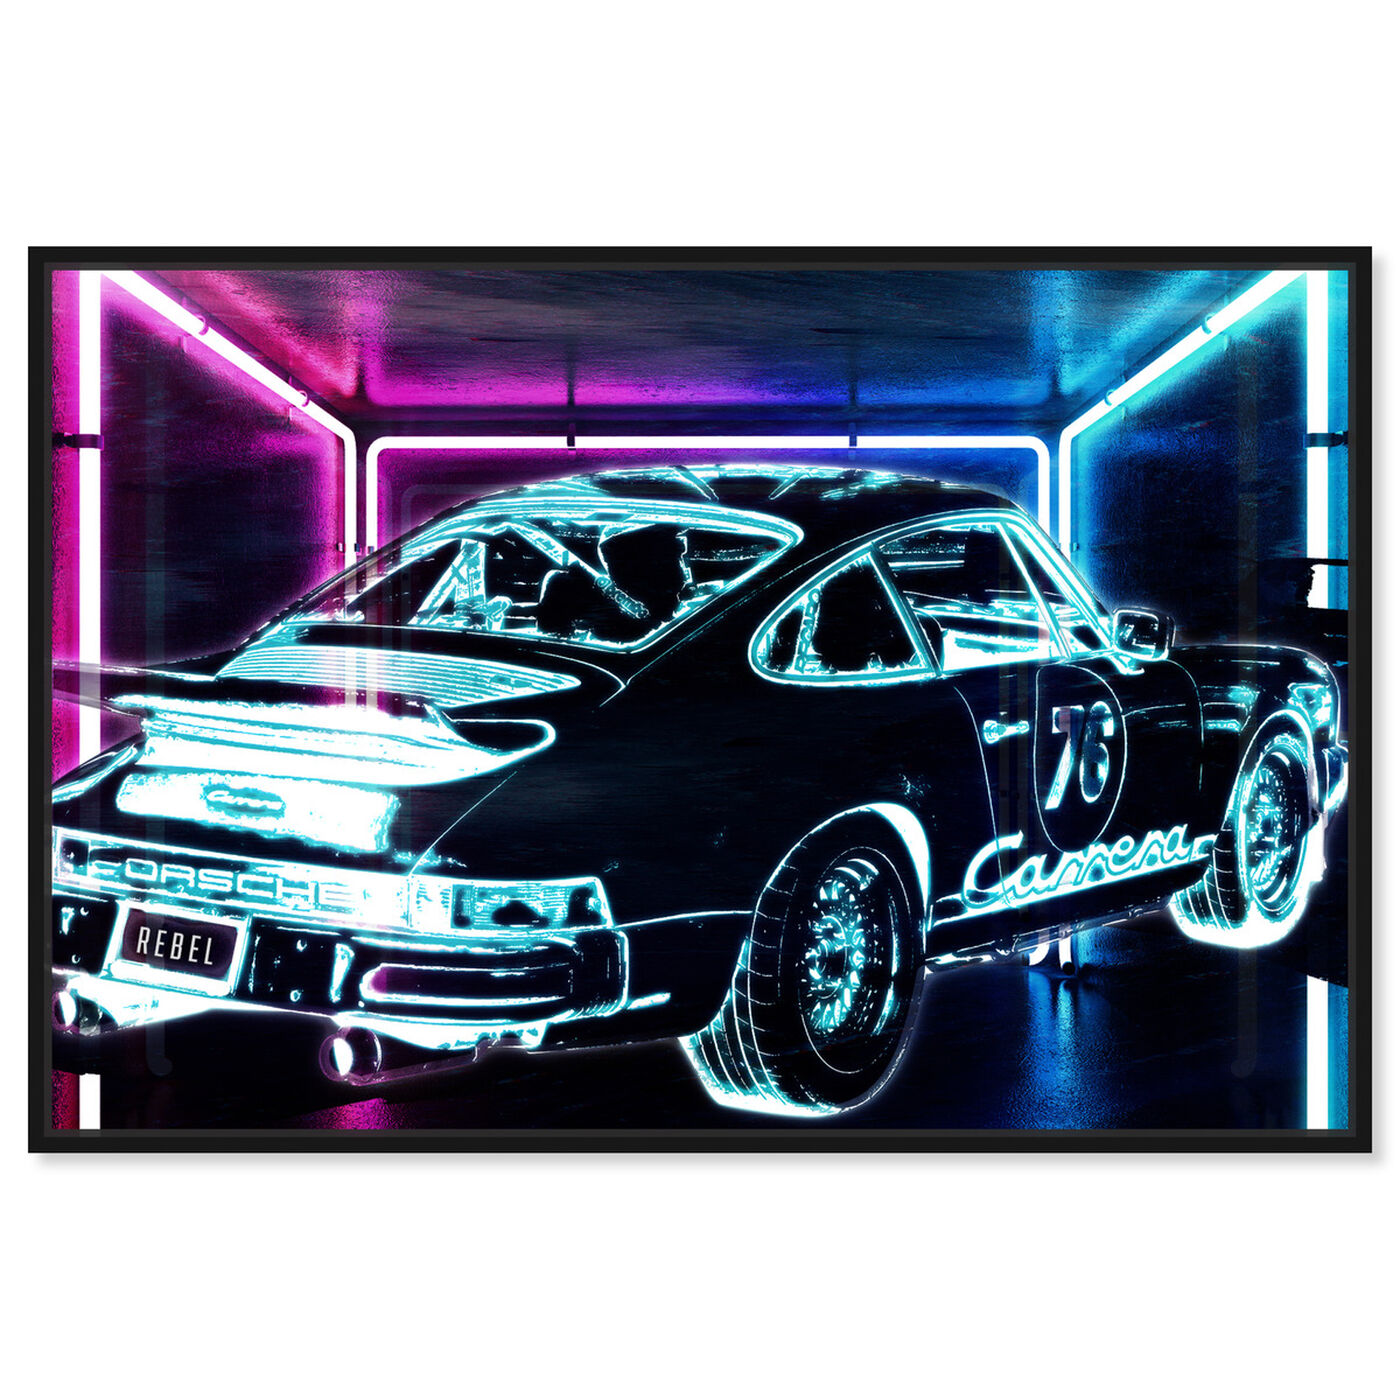 Front view of CyberCar art.